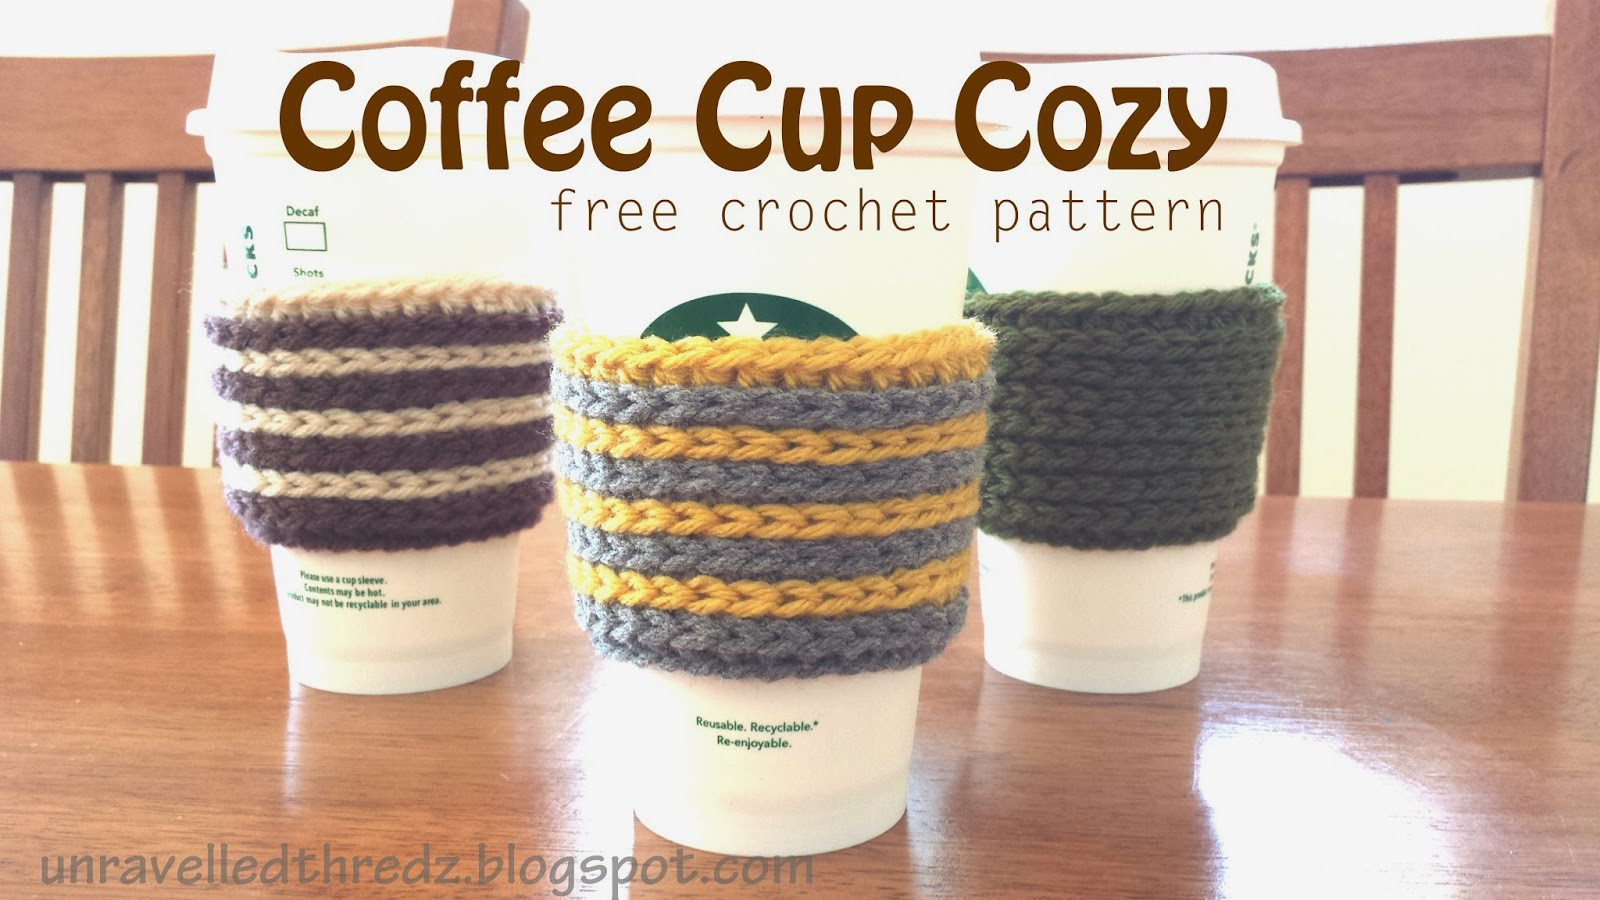 Crochet Coffee Cup Cozy Inspirational Crochet Class Beginning Crochet Sparkleez Crystles Of Crochet Coffee Cup Cozy Luxury Happy Holidays Handmade Gift Idea Crochet Heart Coffee